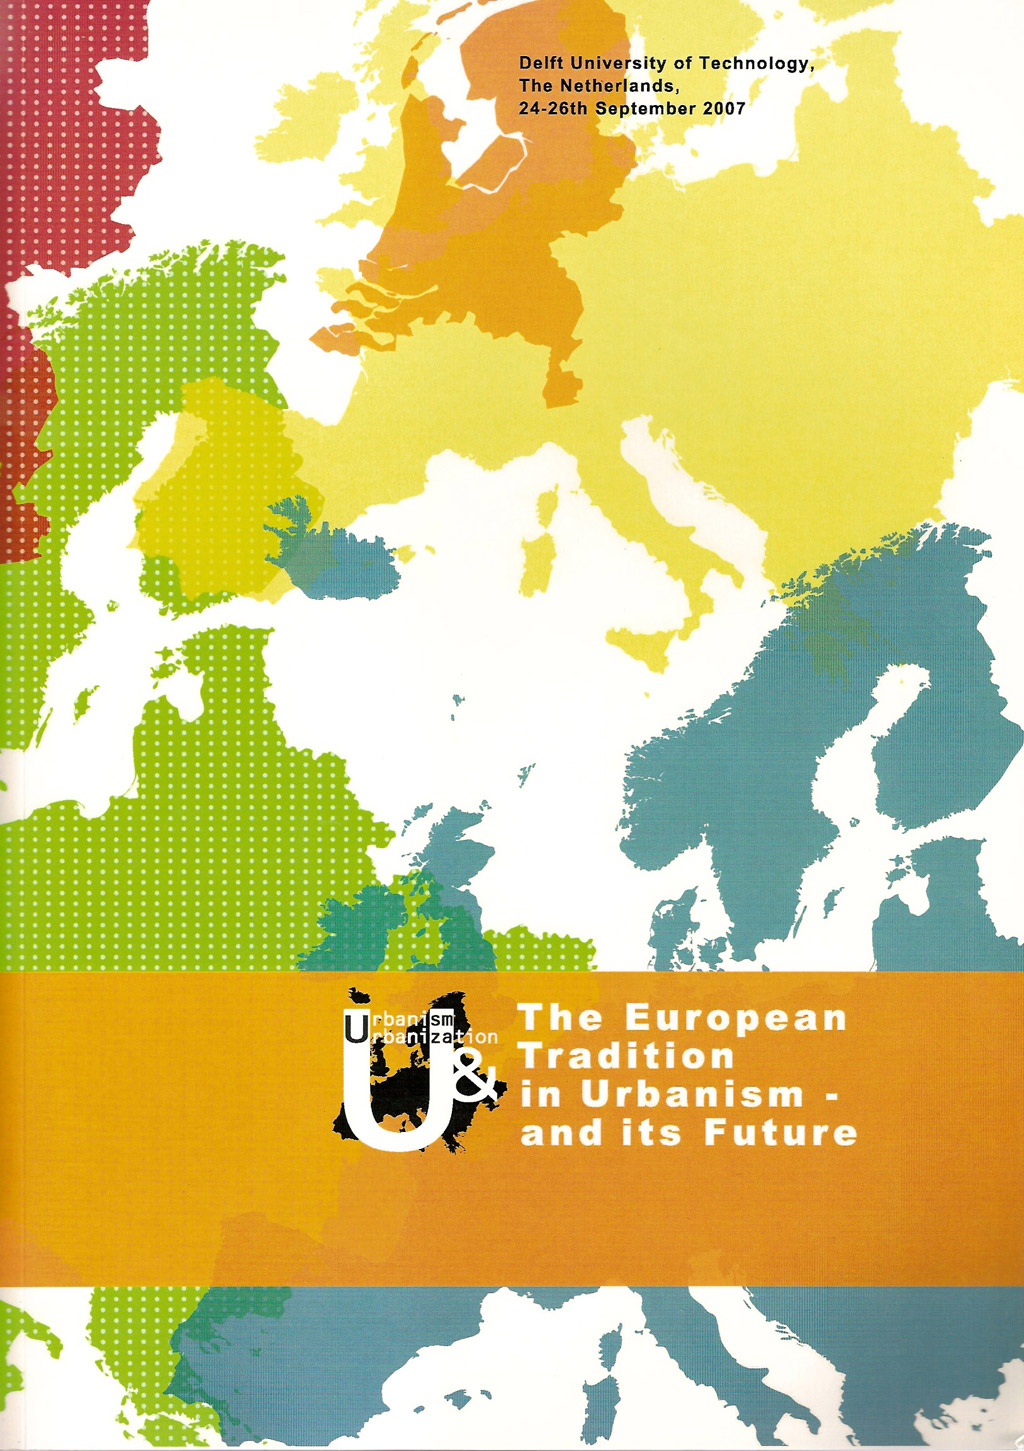 The European Tradition of Urbanism and its Future – International PhD Conference